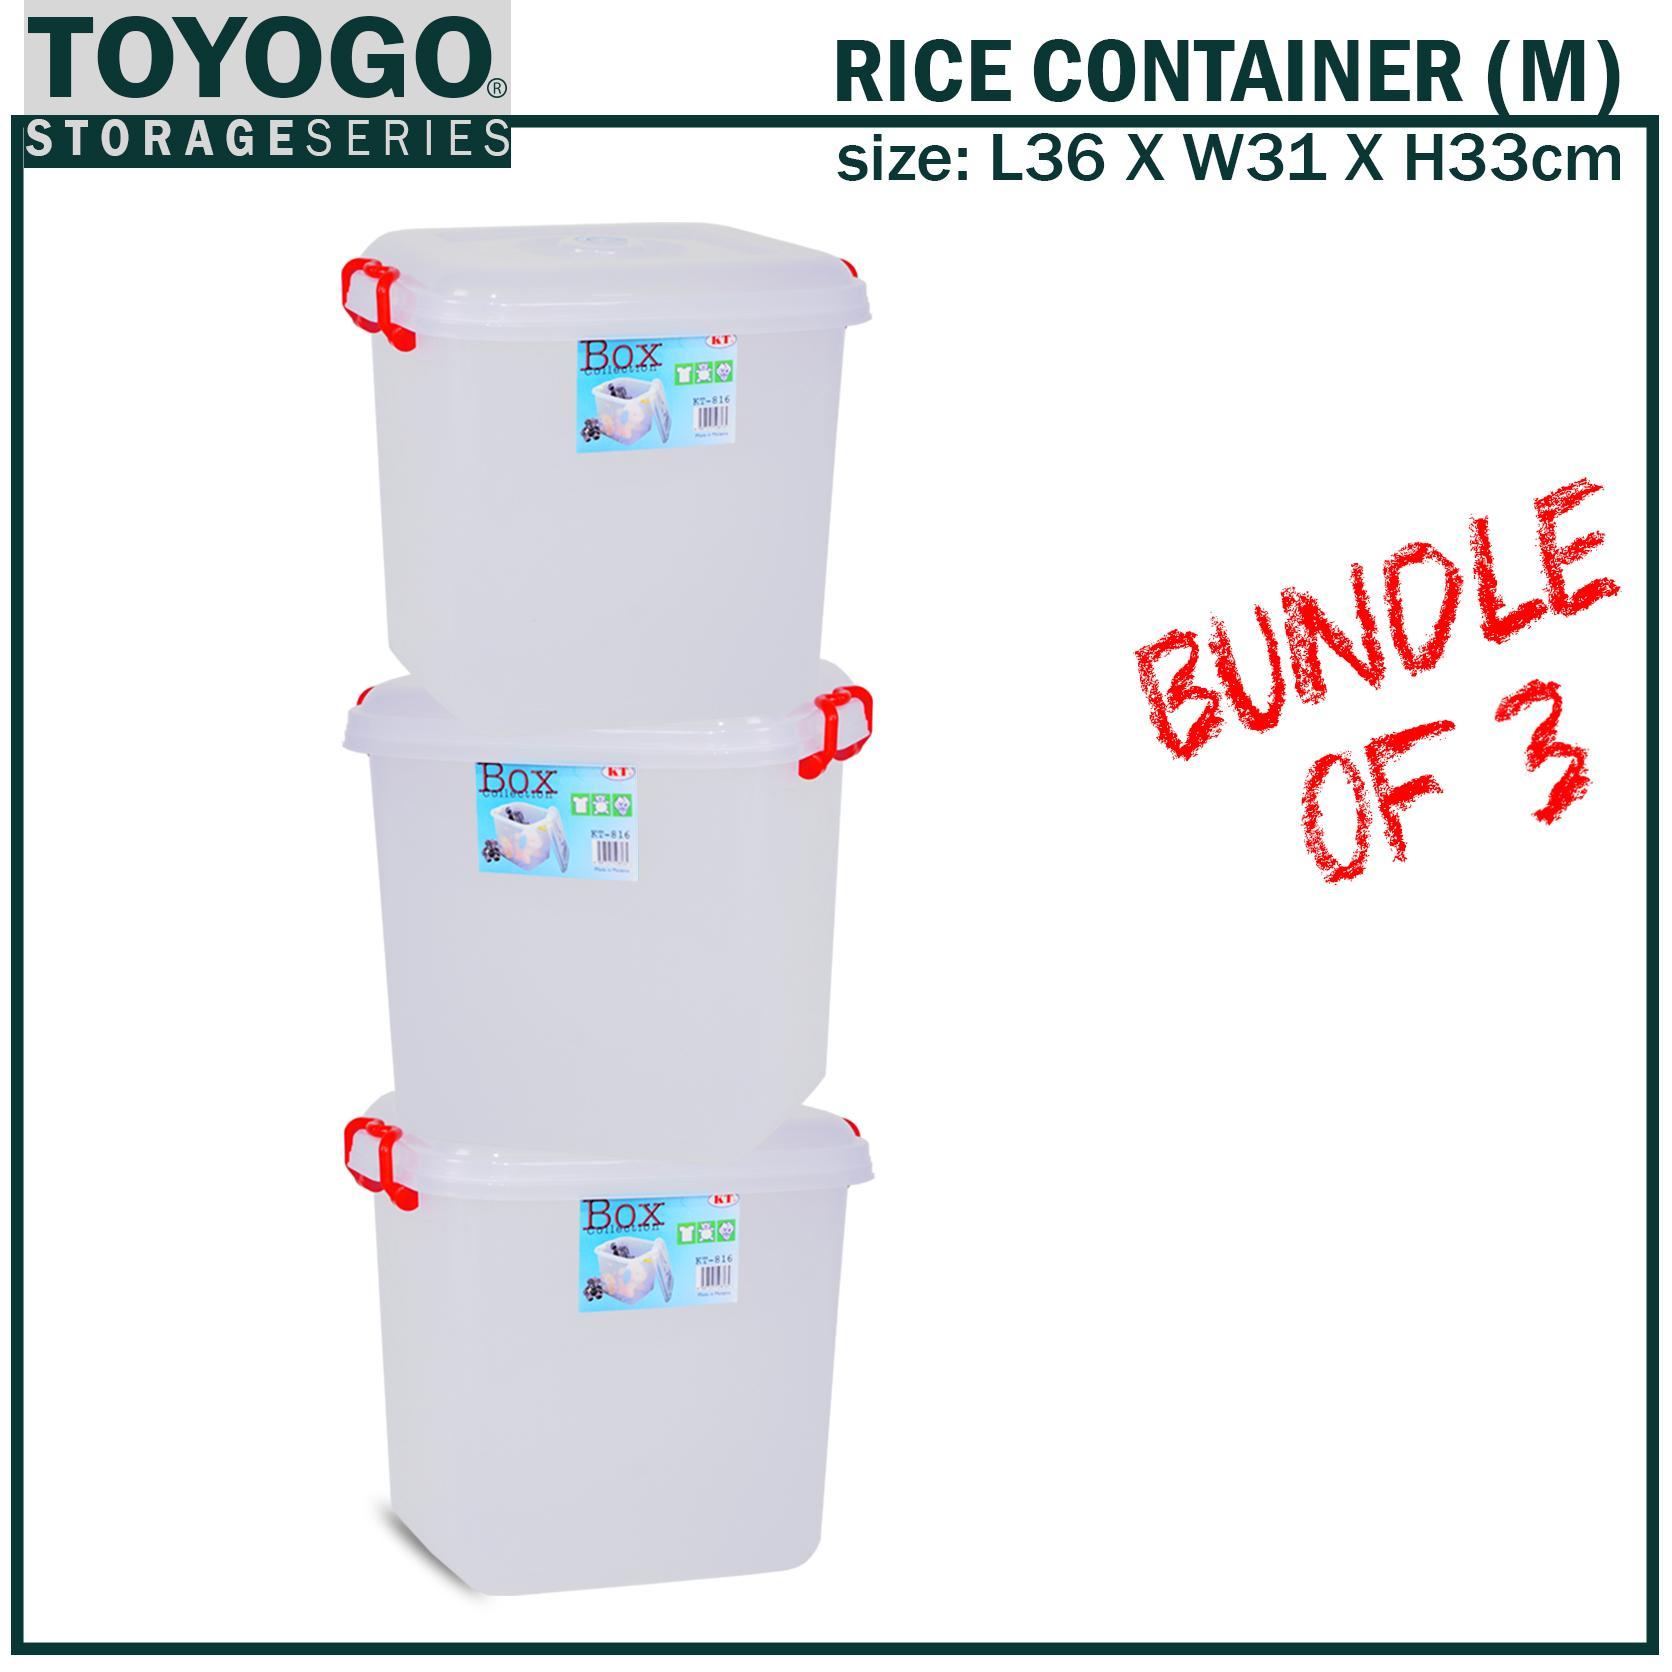 *BUNDLE OF 3 [KT-816] TOYOGO - RICE CONTAINER (HOUSEHOLD STORAGE)